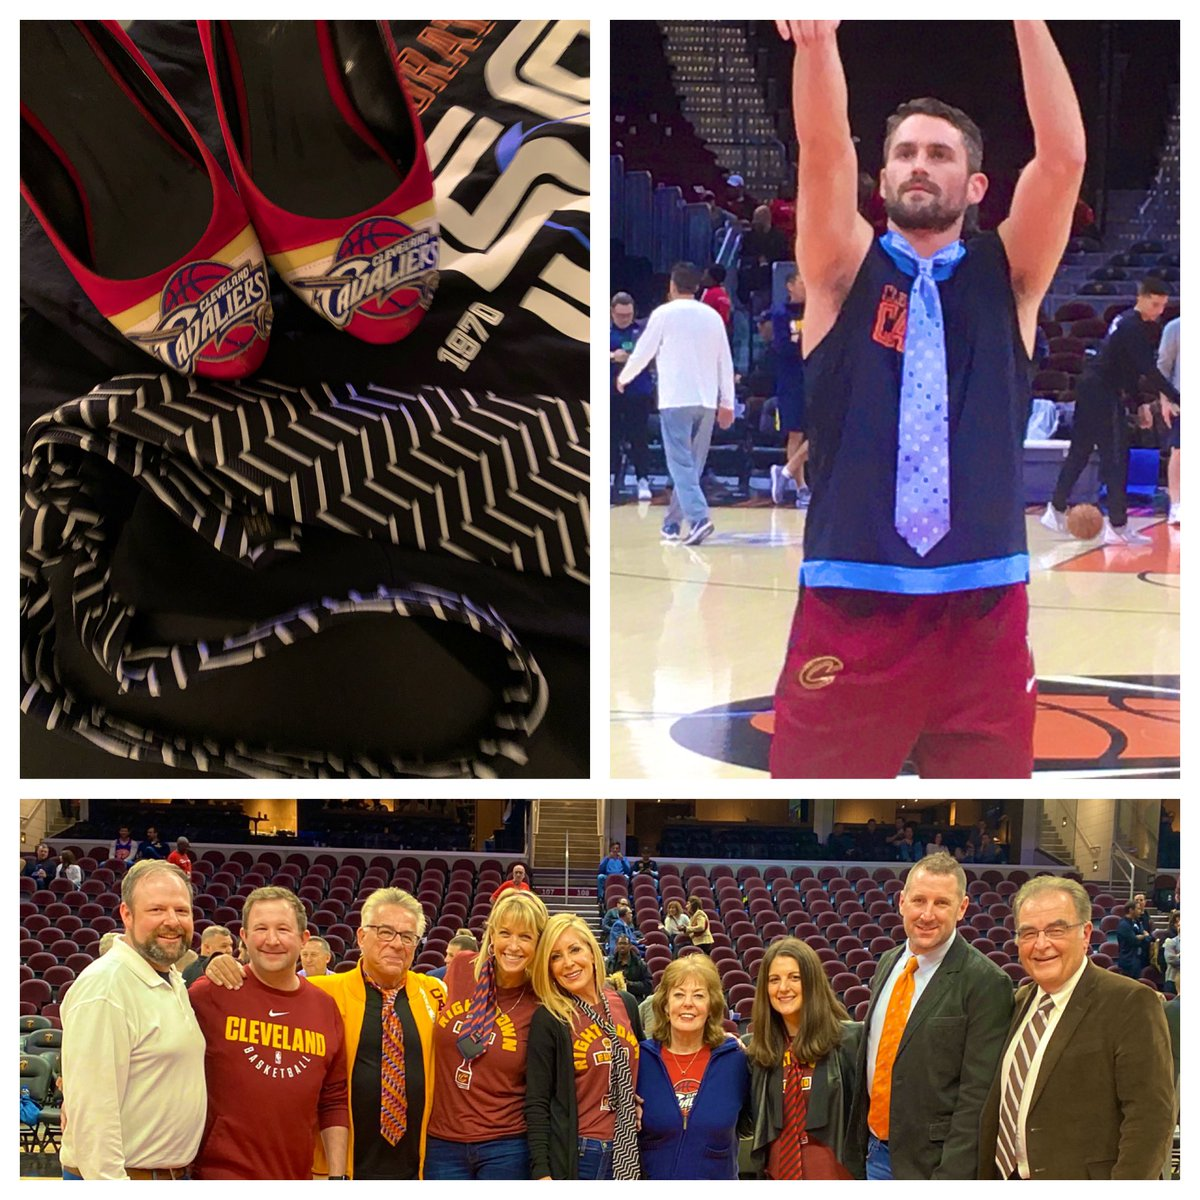 My new normal includes so many people. ❤️Ties 👔 everywhere!!! @kevinlove I couldn't even look up. ❤️ My heart was overflowing with emotion. @cavsdan & Jennifer- thank you @cavs @RMFieldHouse staff & security. It's so hard to move forward, but everyone 👍 & we won 🎉 Thank you